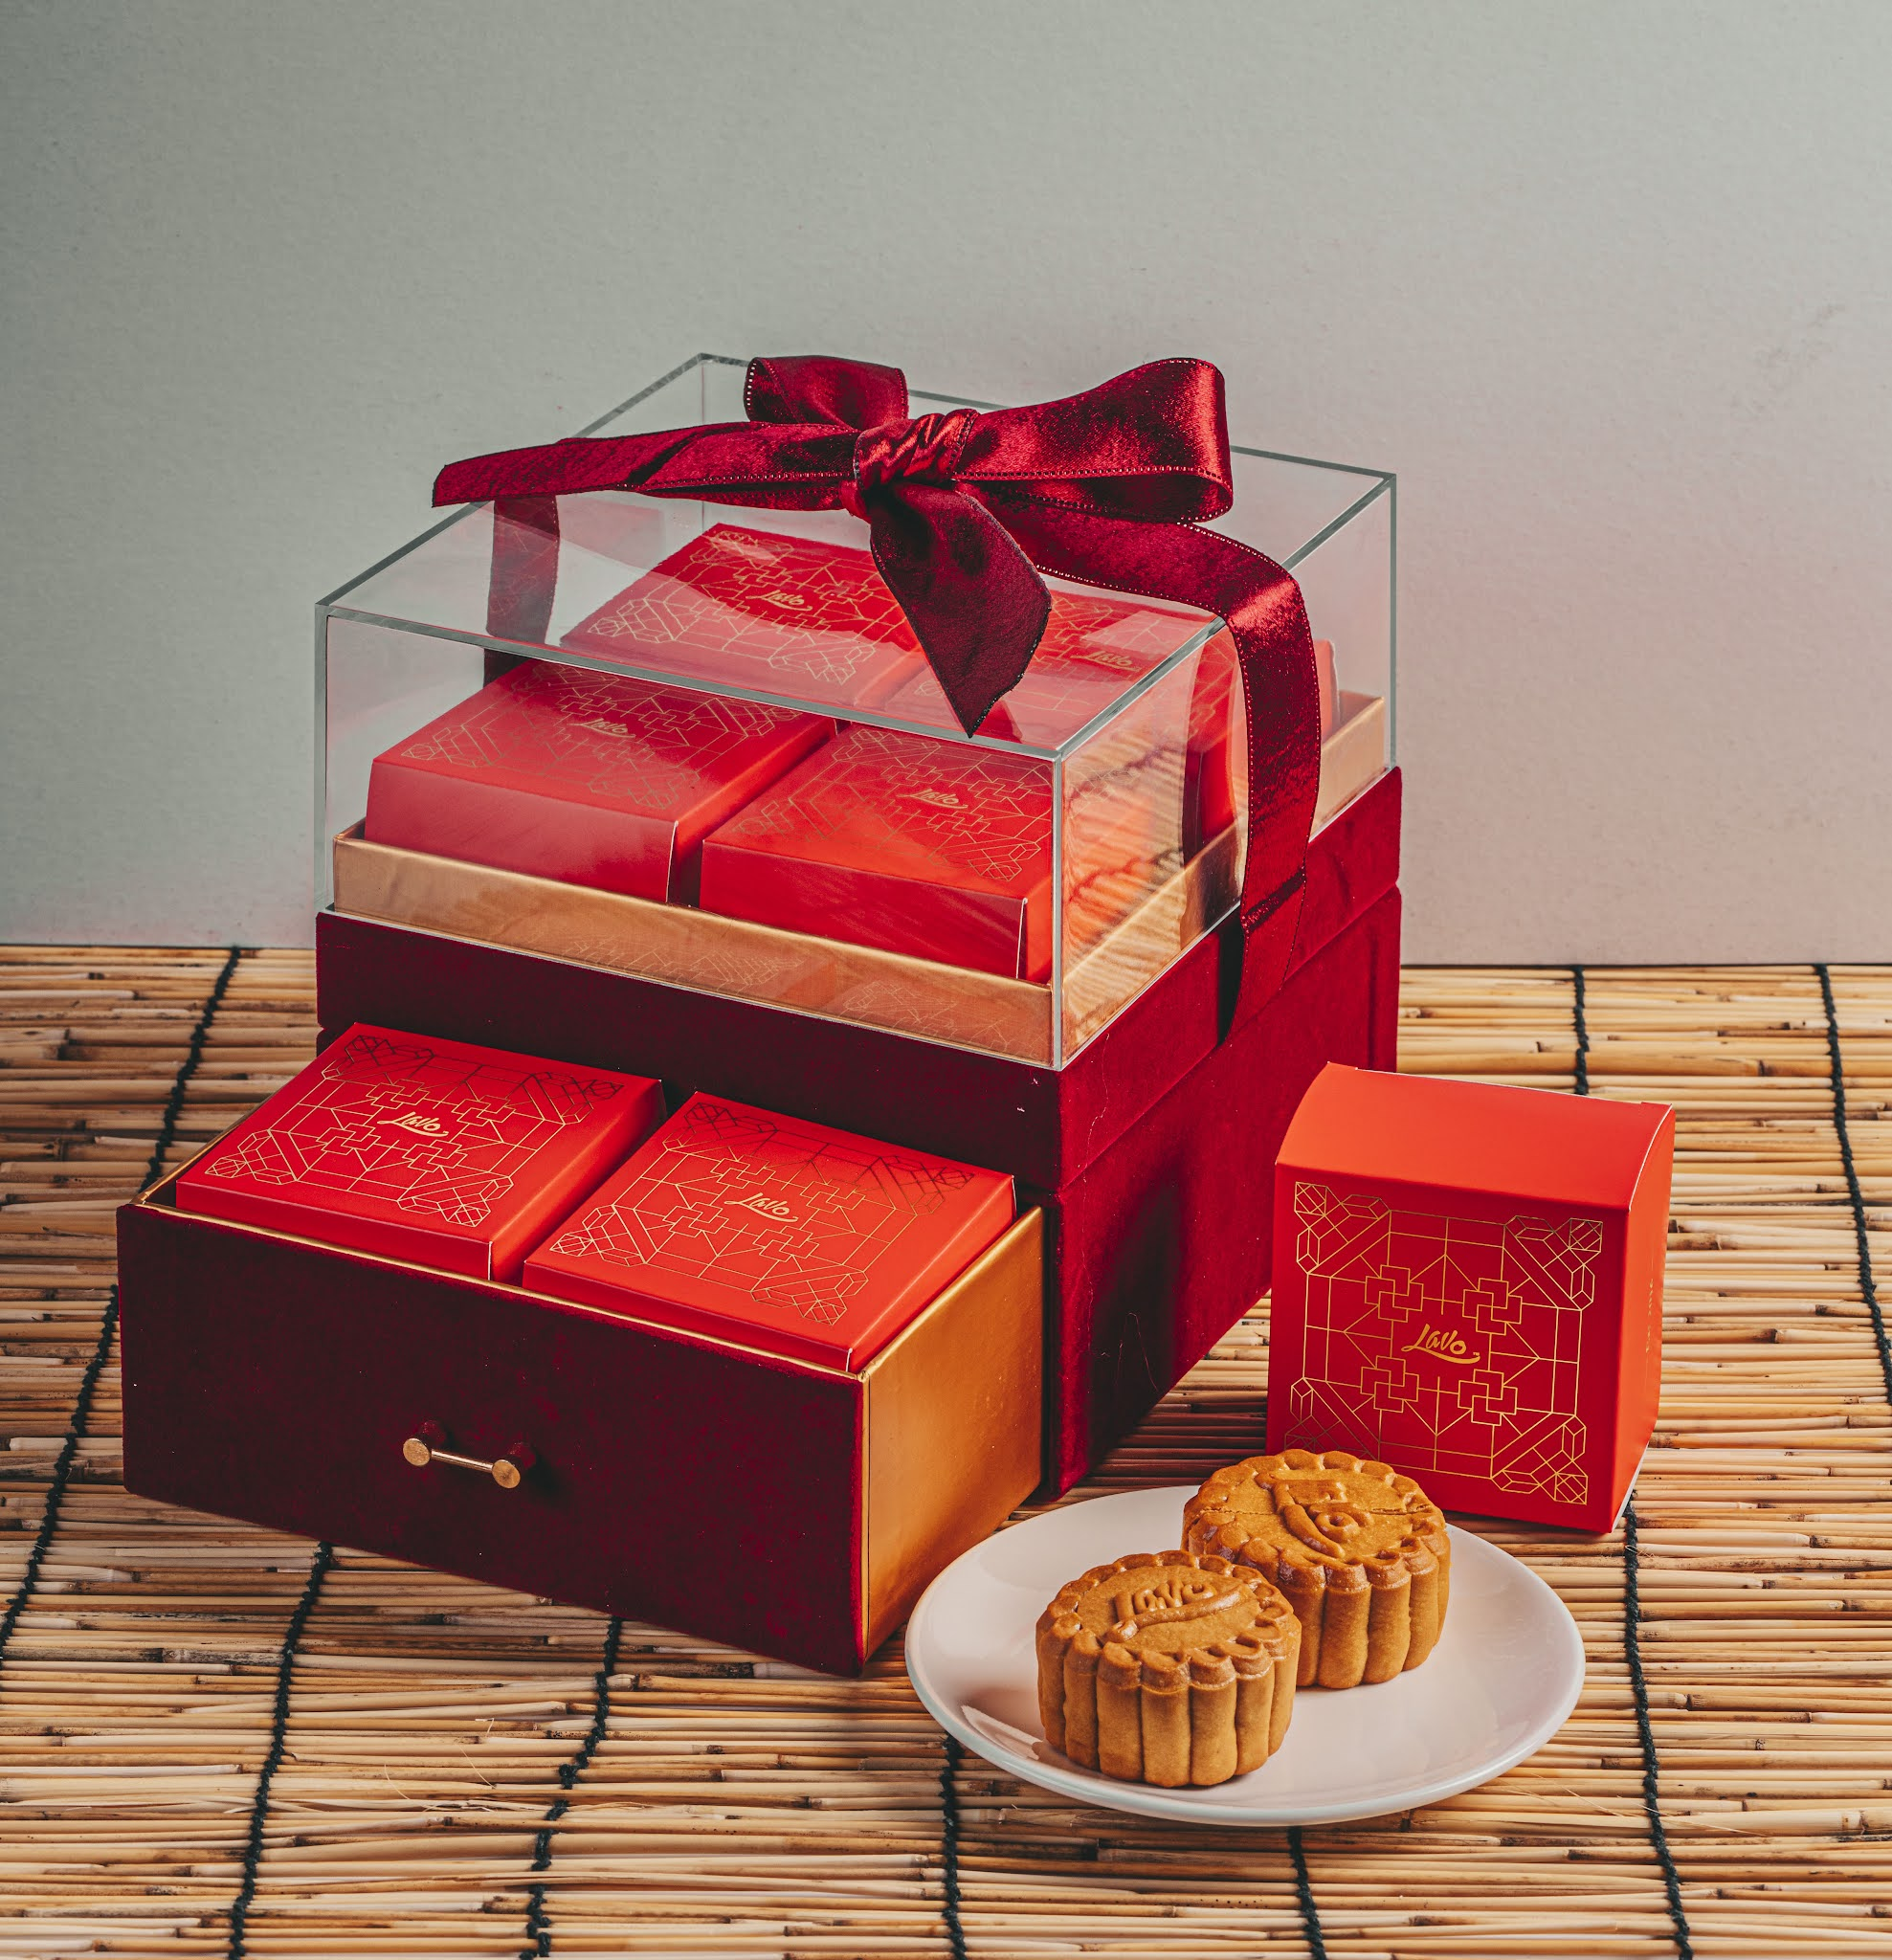 LavoWine: Gifts of French artisanal gin & wine with mooncake sets